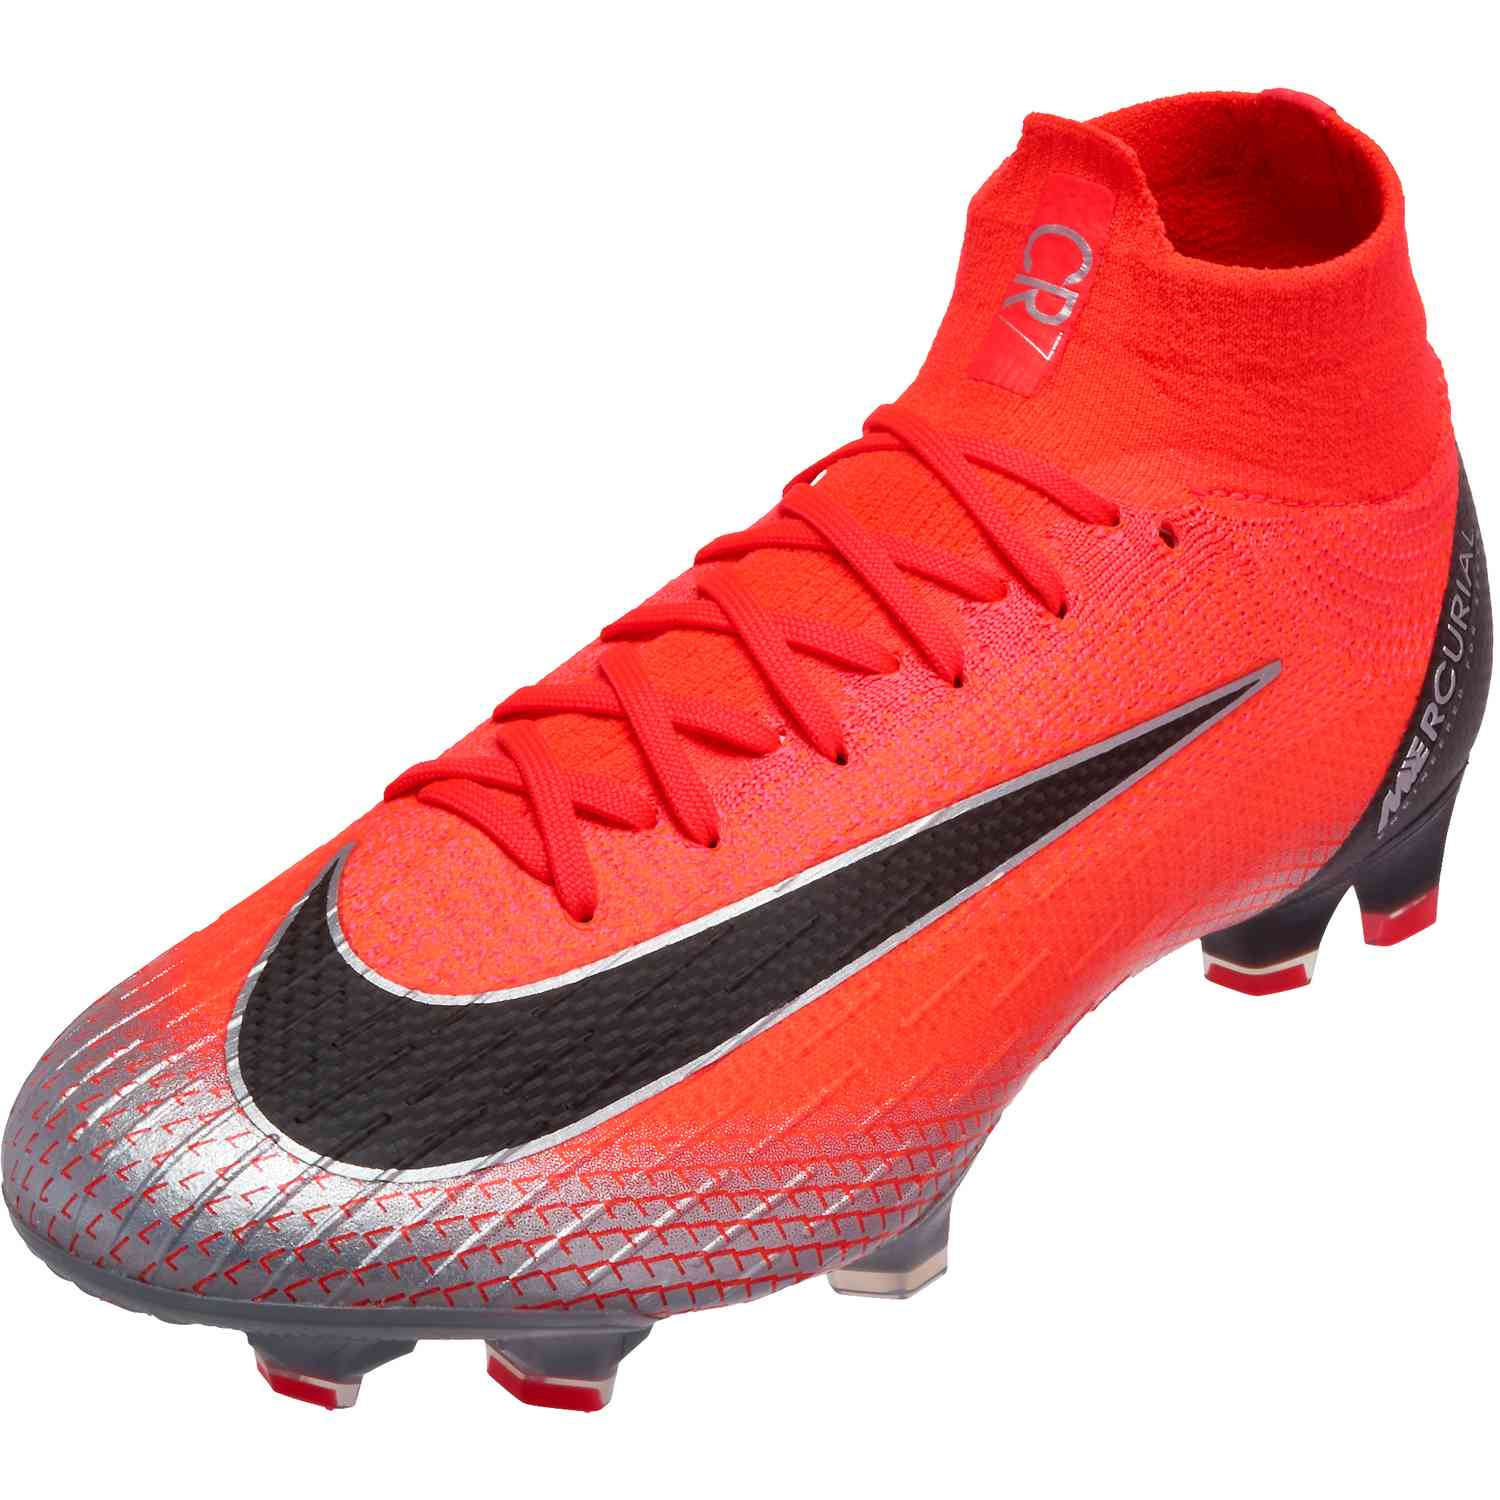 3b3fbe40a6c7 Nike CR7 Mercurial Superfly Elite - Chapter 7 - SoccerPro.com